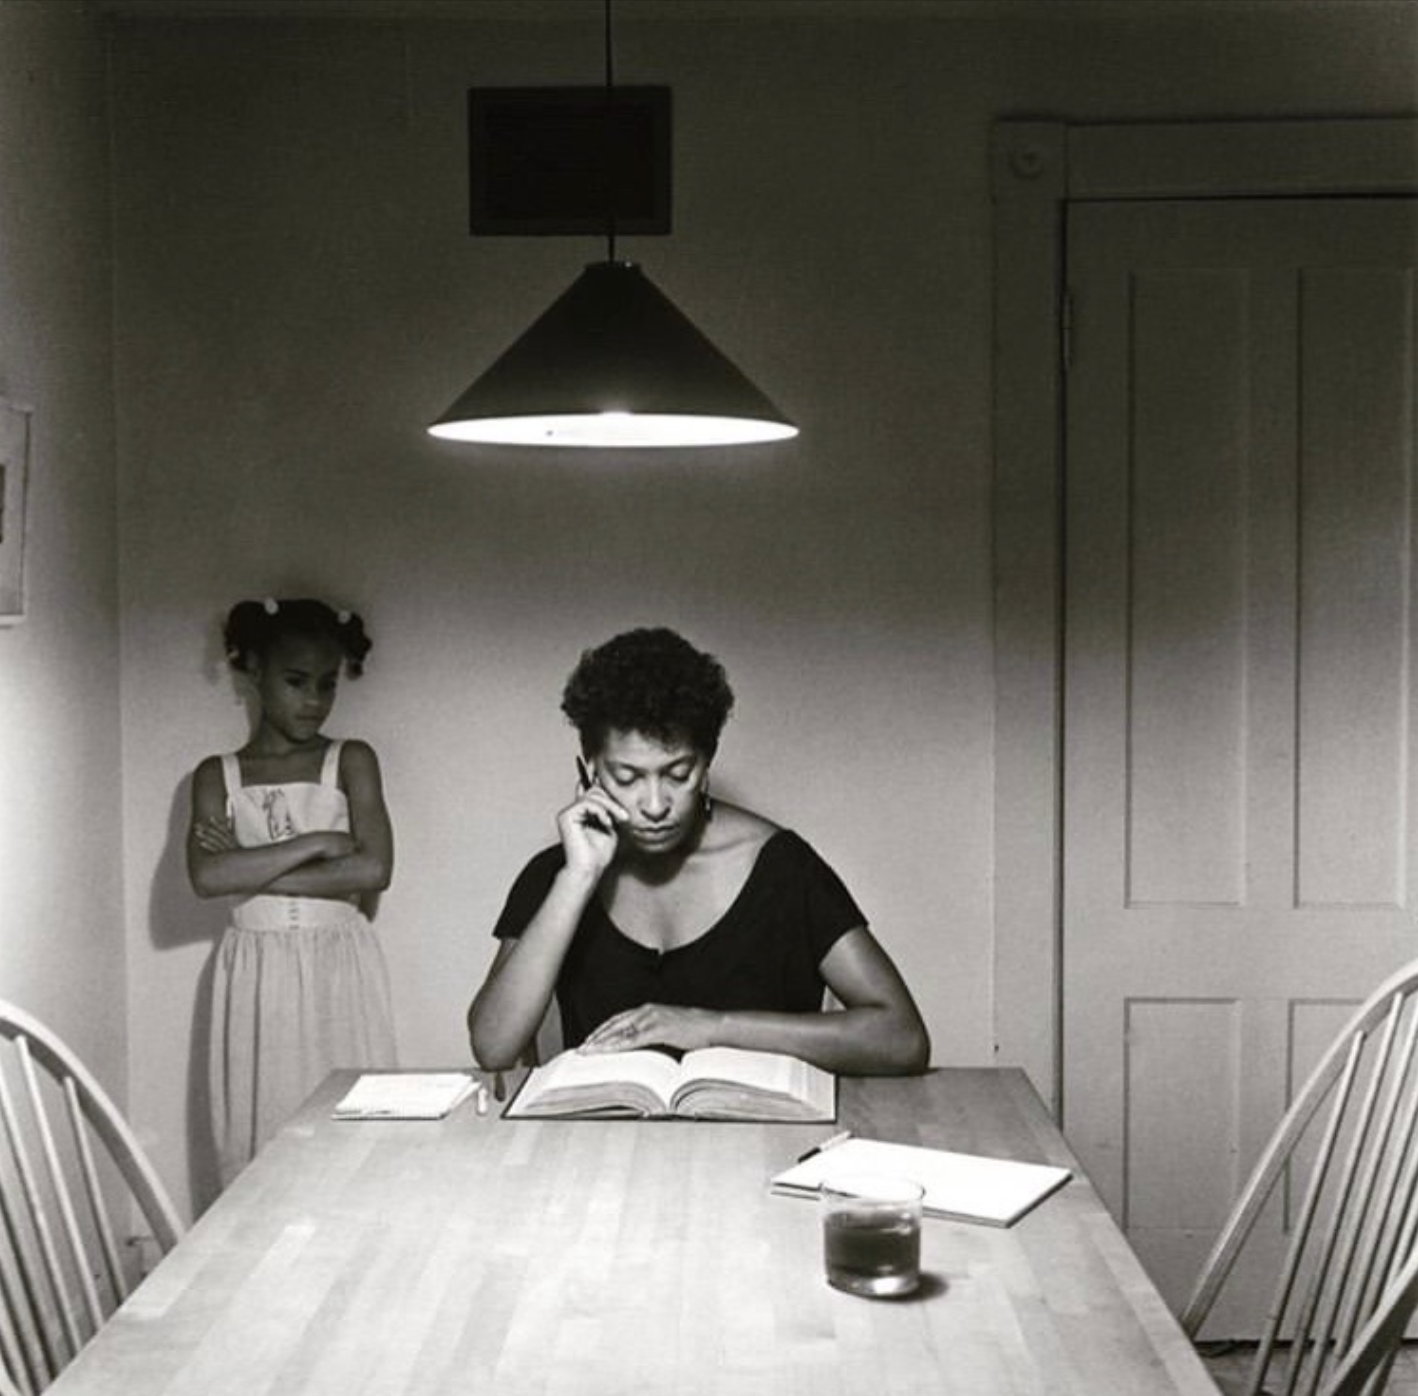 Photo by Carrie Mae Weems